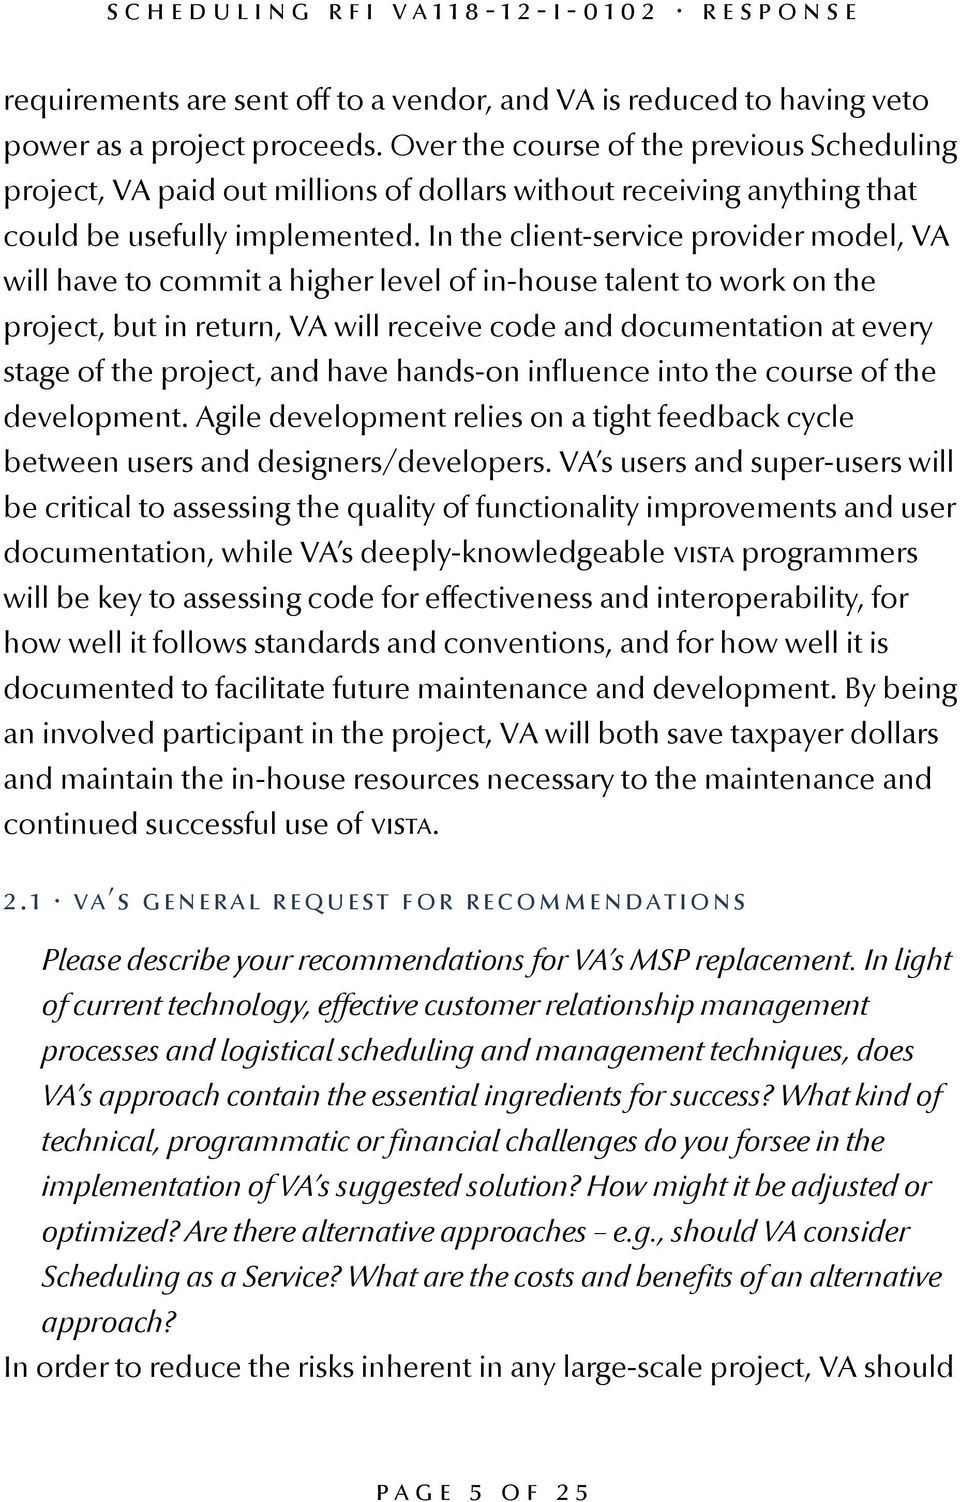 In the client-service provider model, VA will have to commit a higher level of in-house talent to work on the project, but in return, VA will receive code and documentation at every stage of the